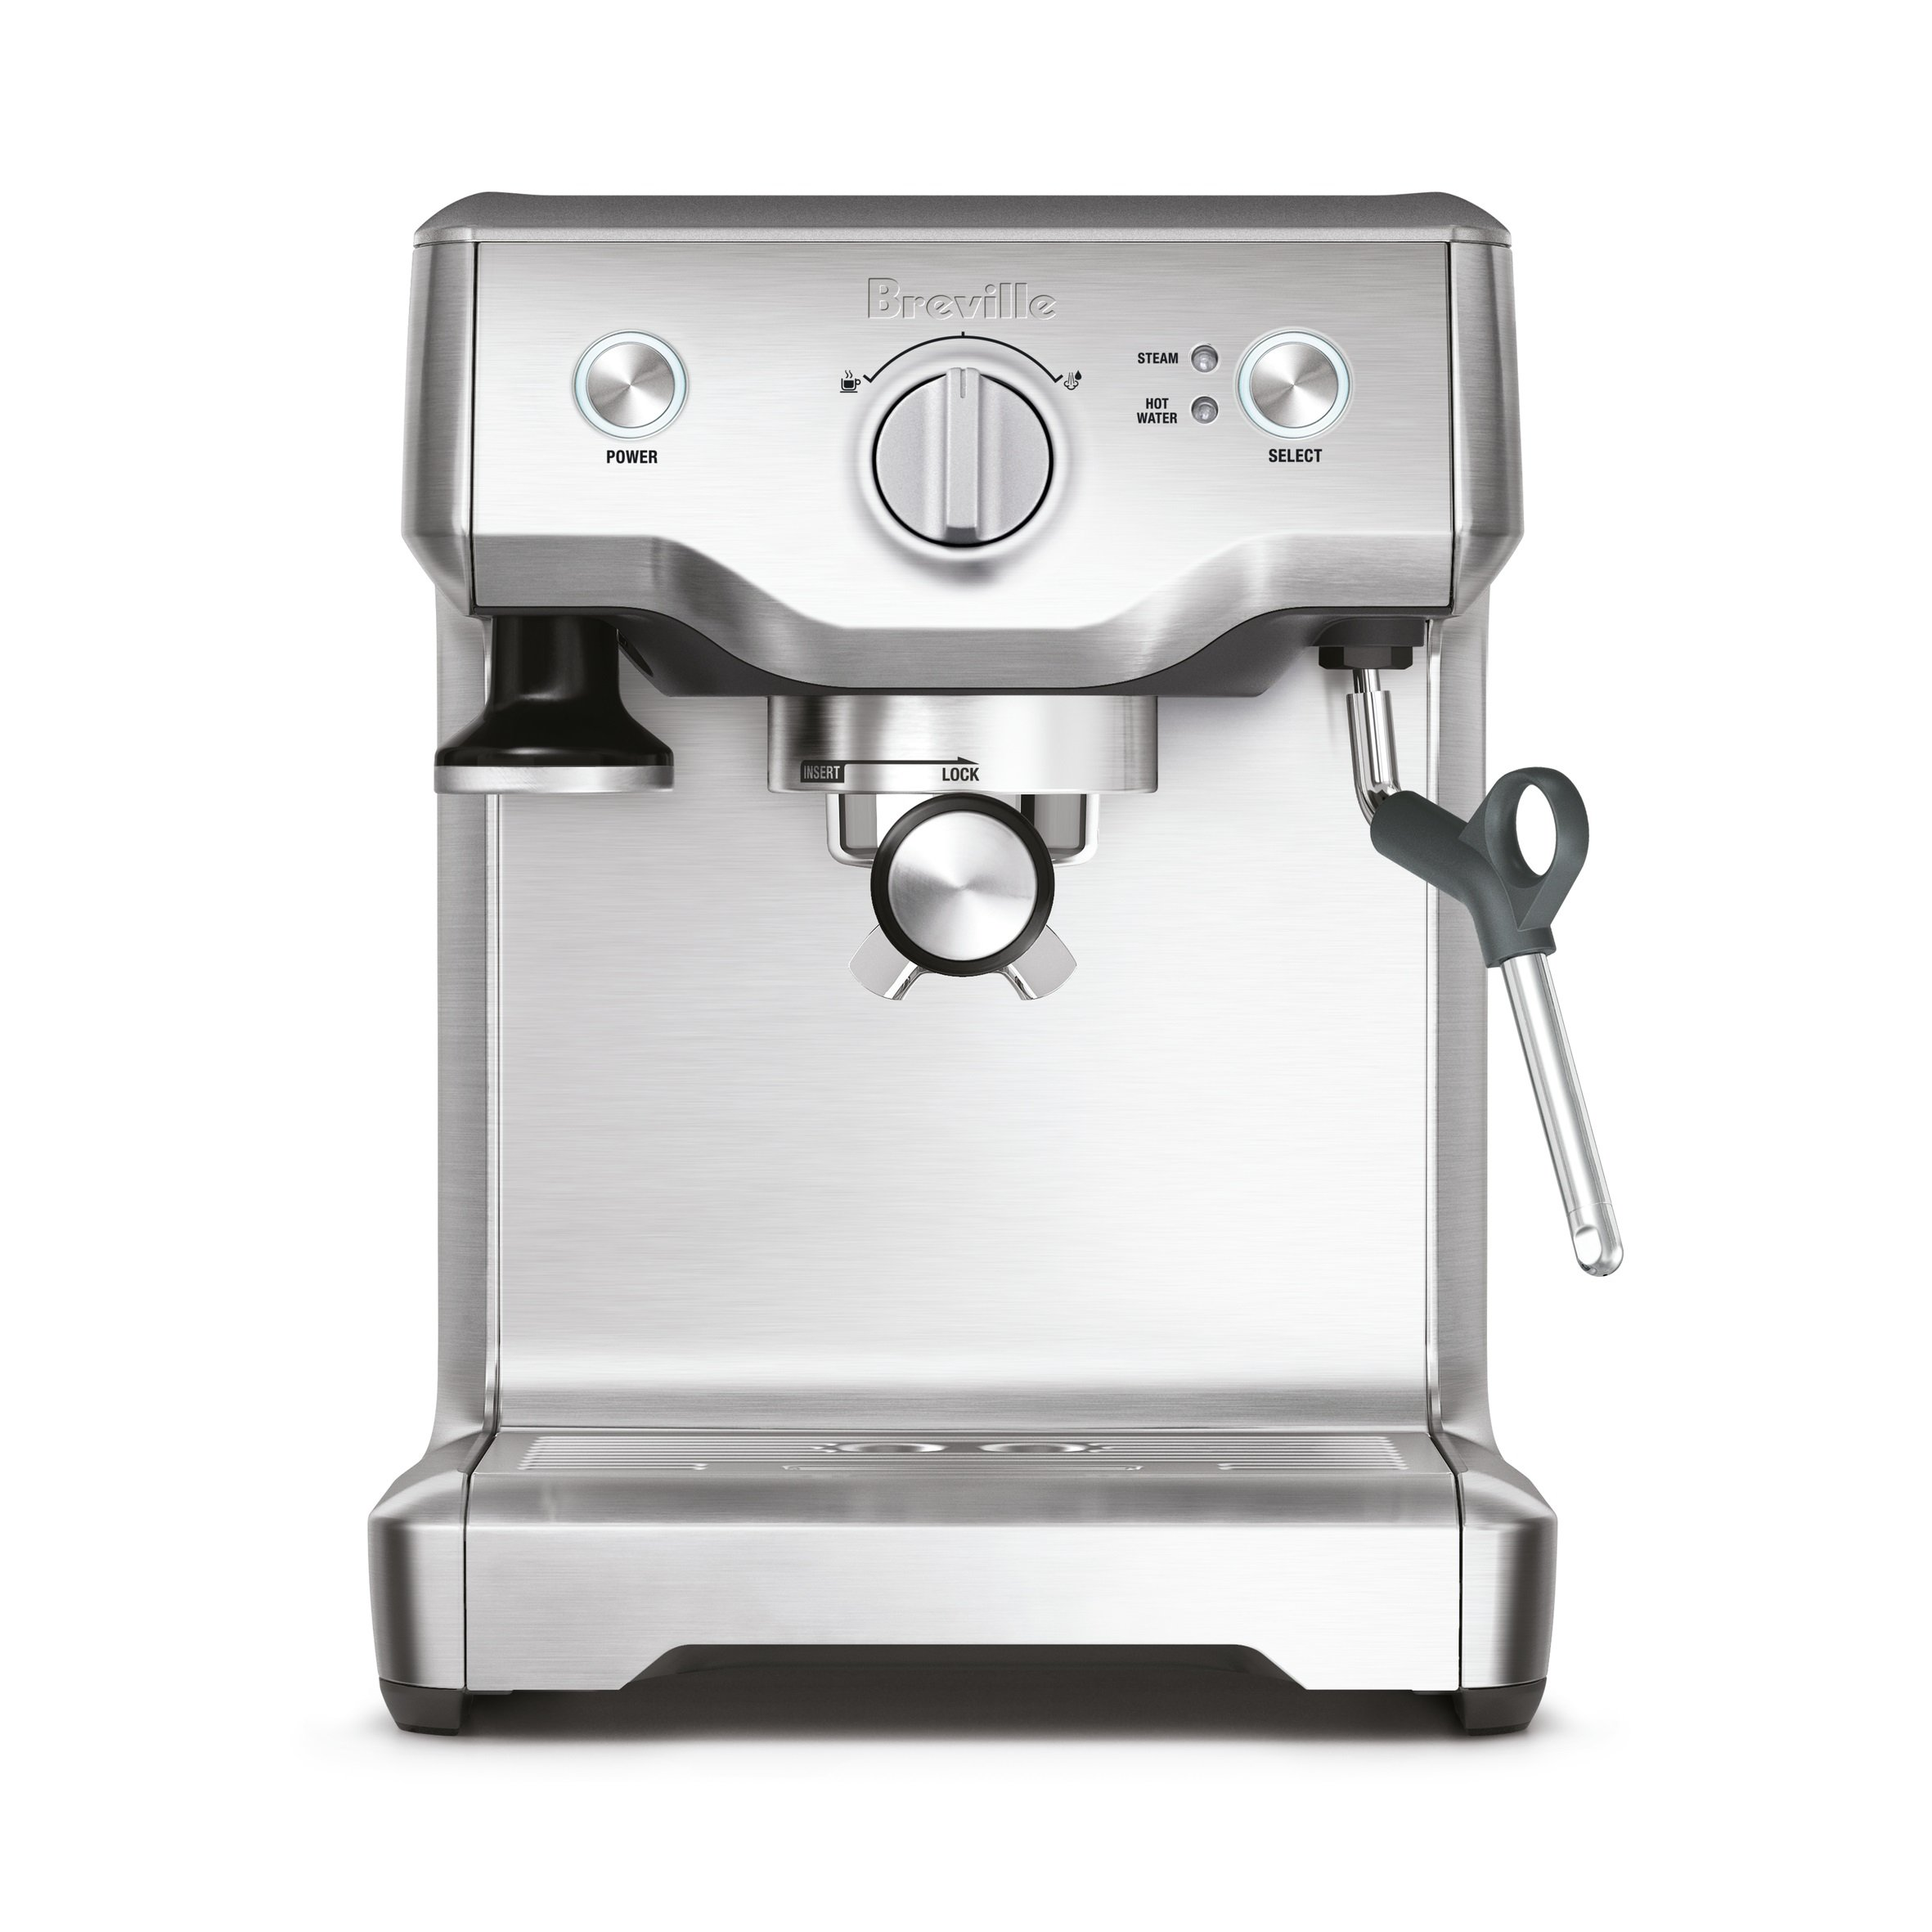 Breville Duo Temp Pro Espresso Machine, Stainless Steel by Breville